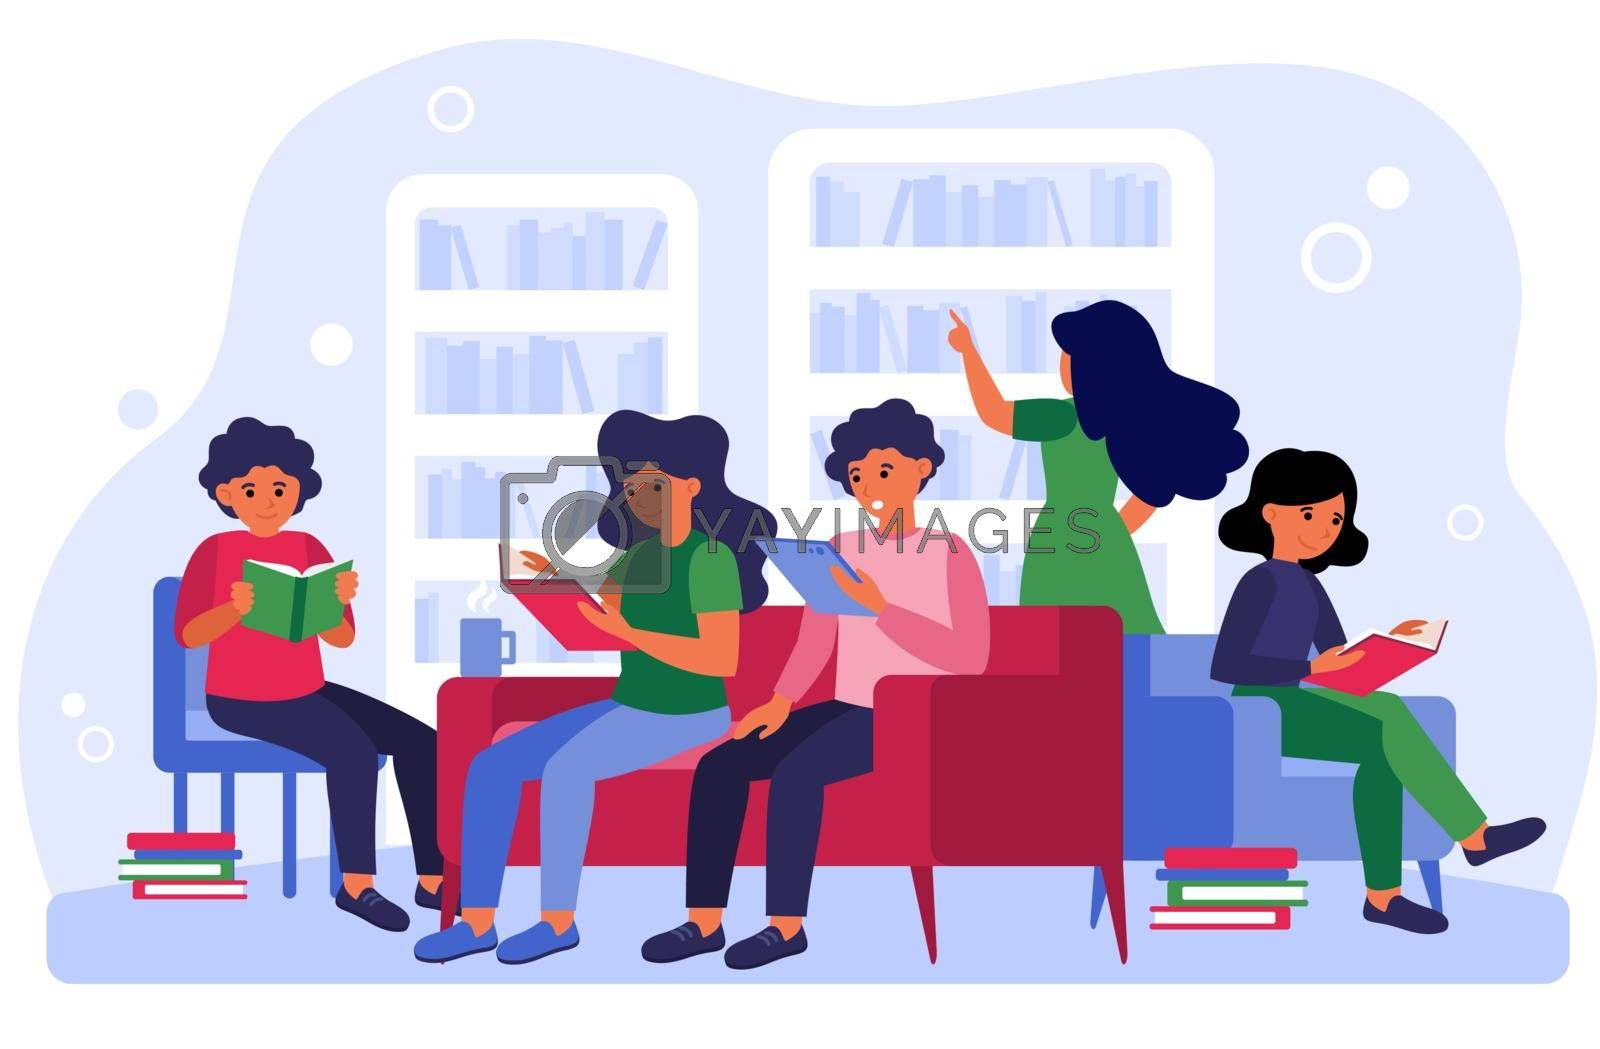 People studying and learning in room flat vector illustration. Men and women sitting on sofa at bookshelves and bookcases and reading books indoor. Library concept for creative design template